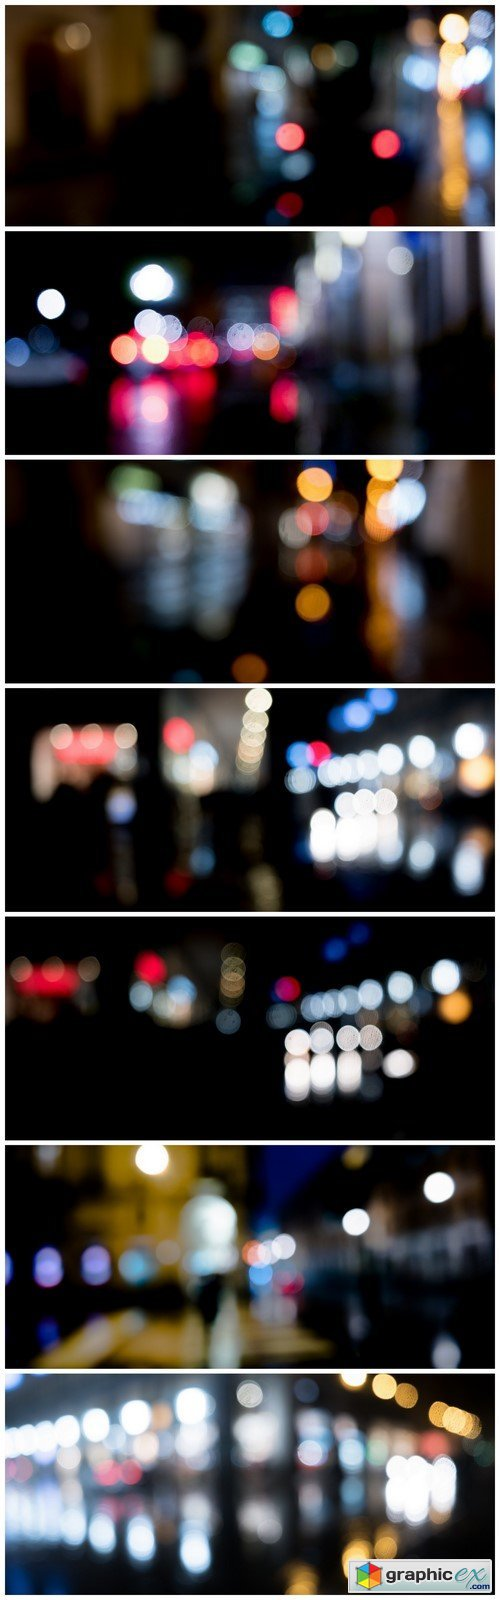 Night lights of the city Blurred Background 7X JPEG